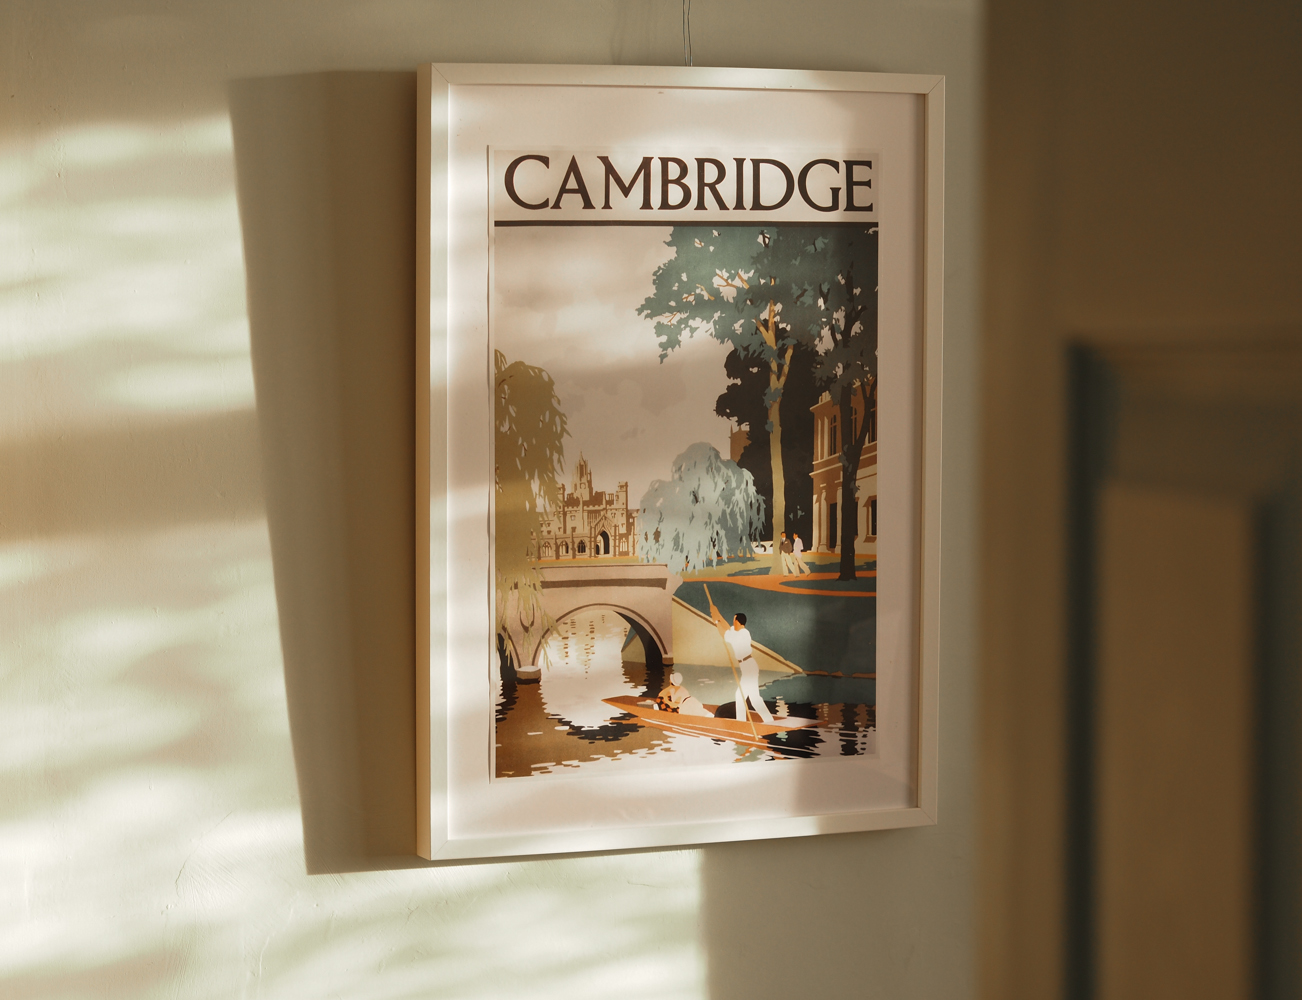 Home is here expat blog Cambridge